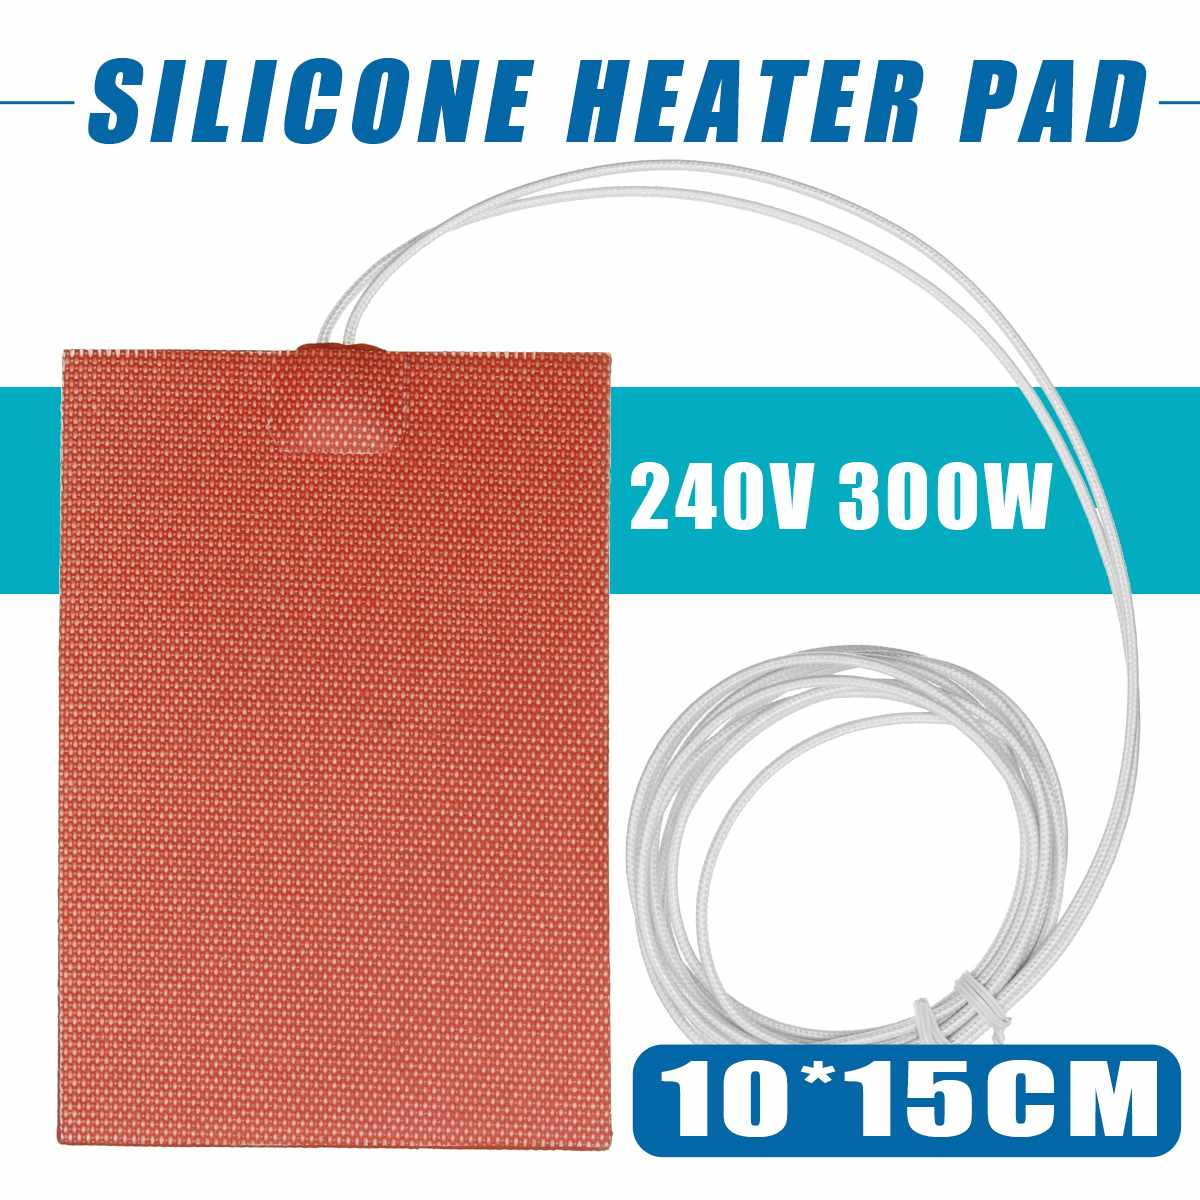 100X150mm 300W 240V Silicone Heater Engine Block Oil Pan Hydraulic Tank Heating Plate Heater Pad/Mat W/3 PSA